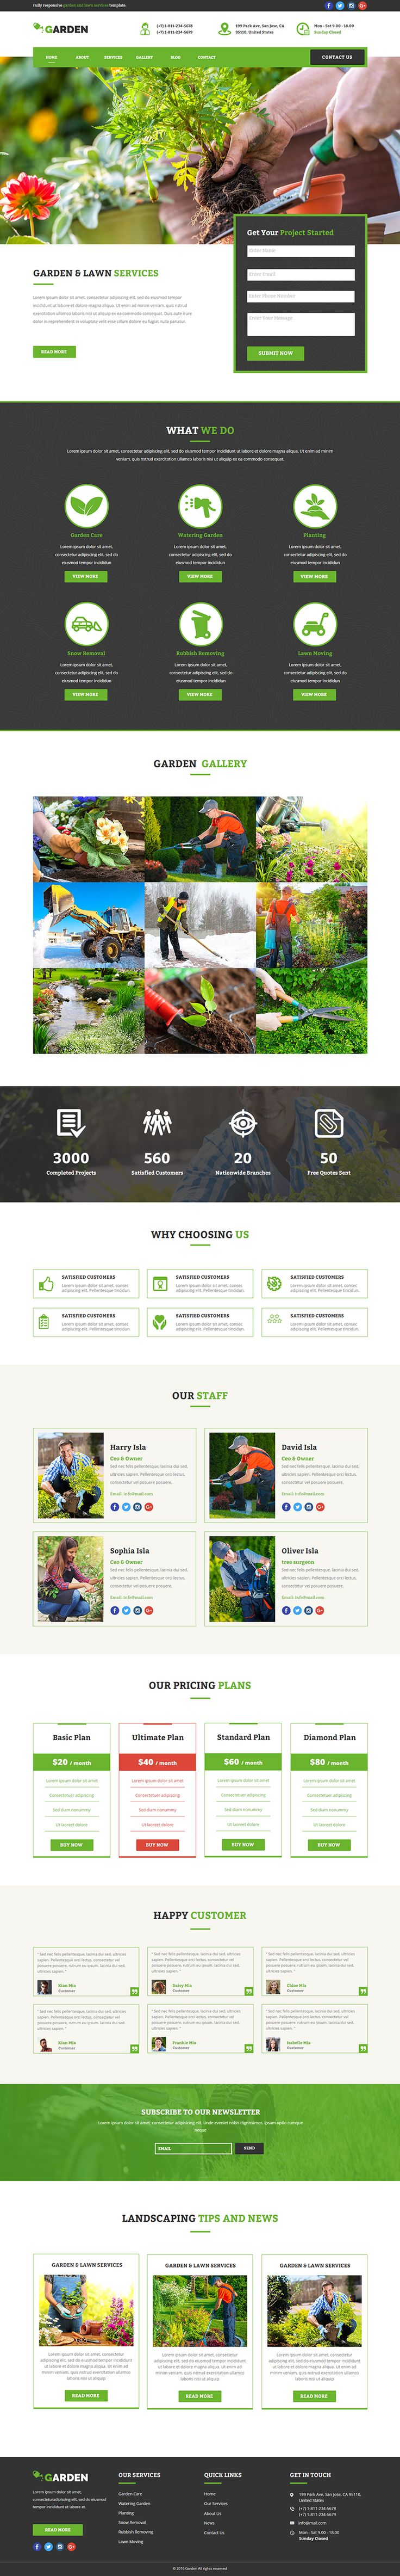 This theme can be used for garden services, lawn services, landscape design, gardening, pest control, groundskeepers, landscape architects, gardener business, florists and snow removal services. This theme is perfect for any other categories as well. The template is based on modern and clean layout